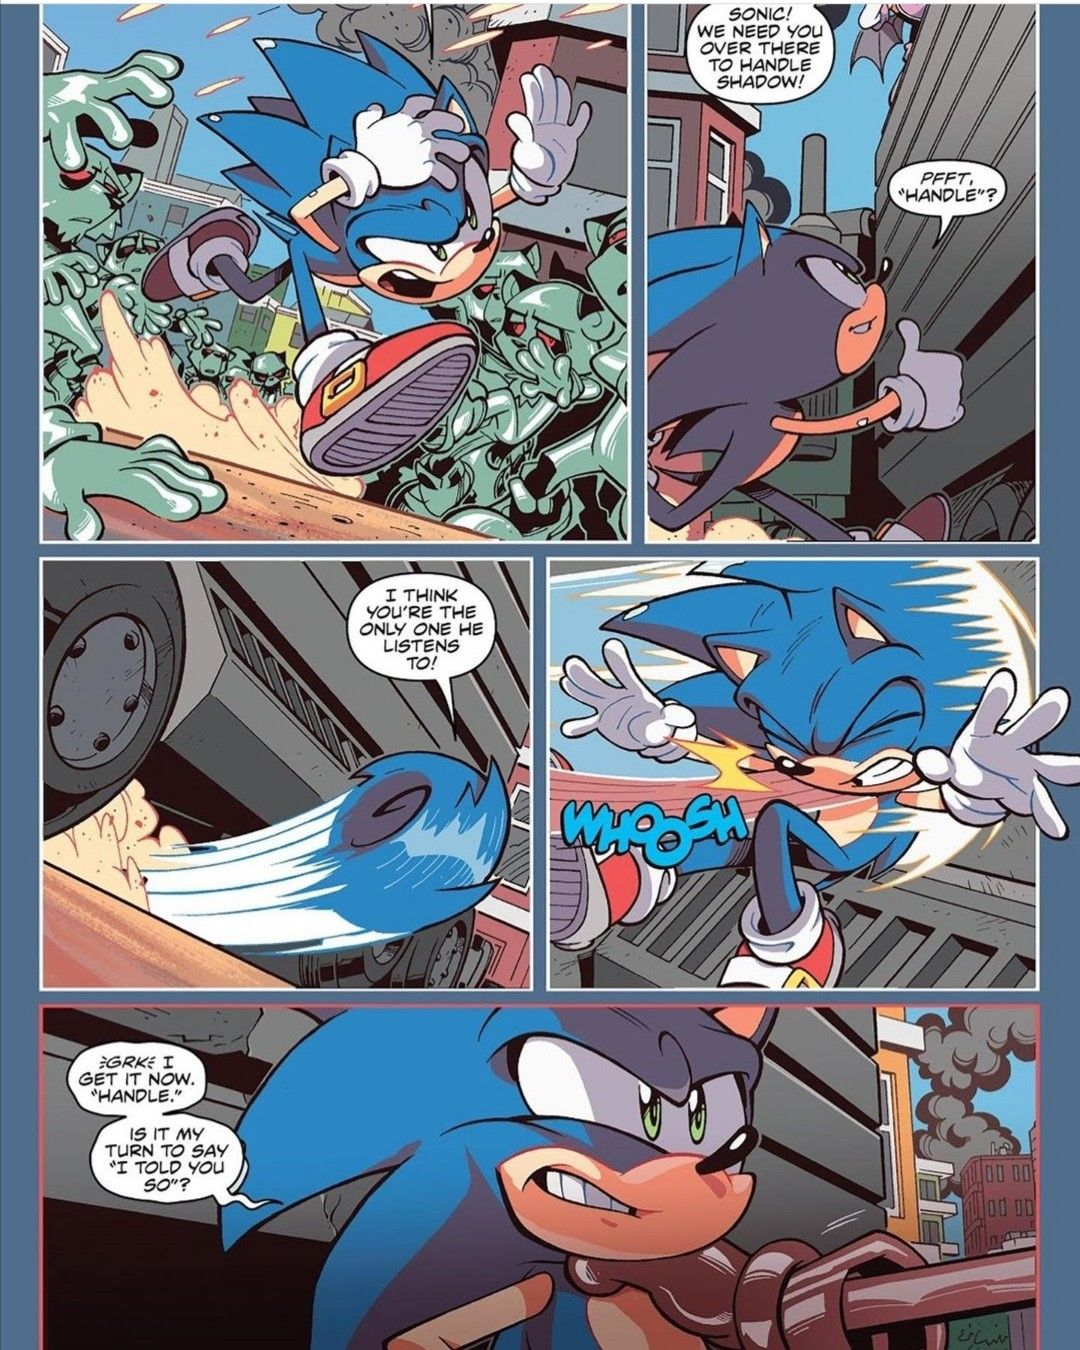 Sonicthehedgehog Shadowthehedgehog Rougethebat E123omega Zombots Idwsonic19 Thisisinsane Mypoorboys Street Fighter Comics Shadow The Hedgehog Sonic